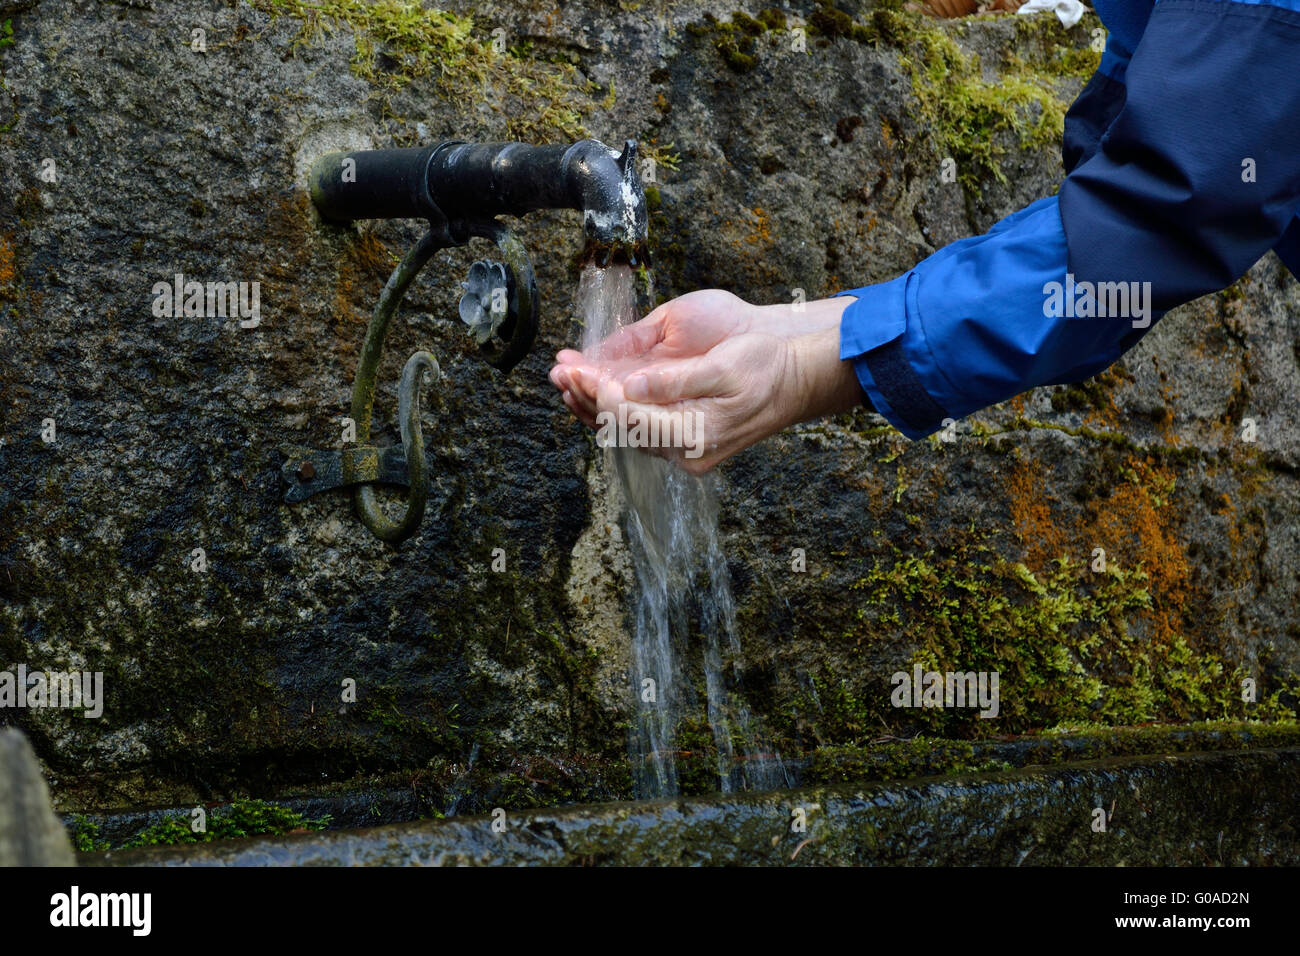 Person refreshes itself at a drinking water source Stock Photo